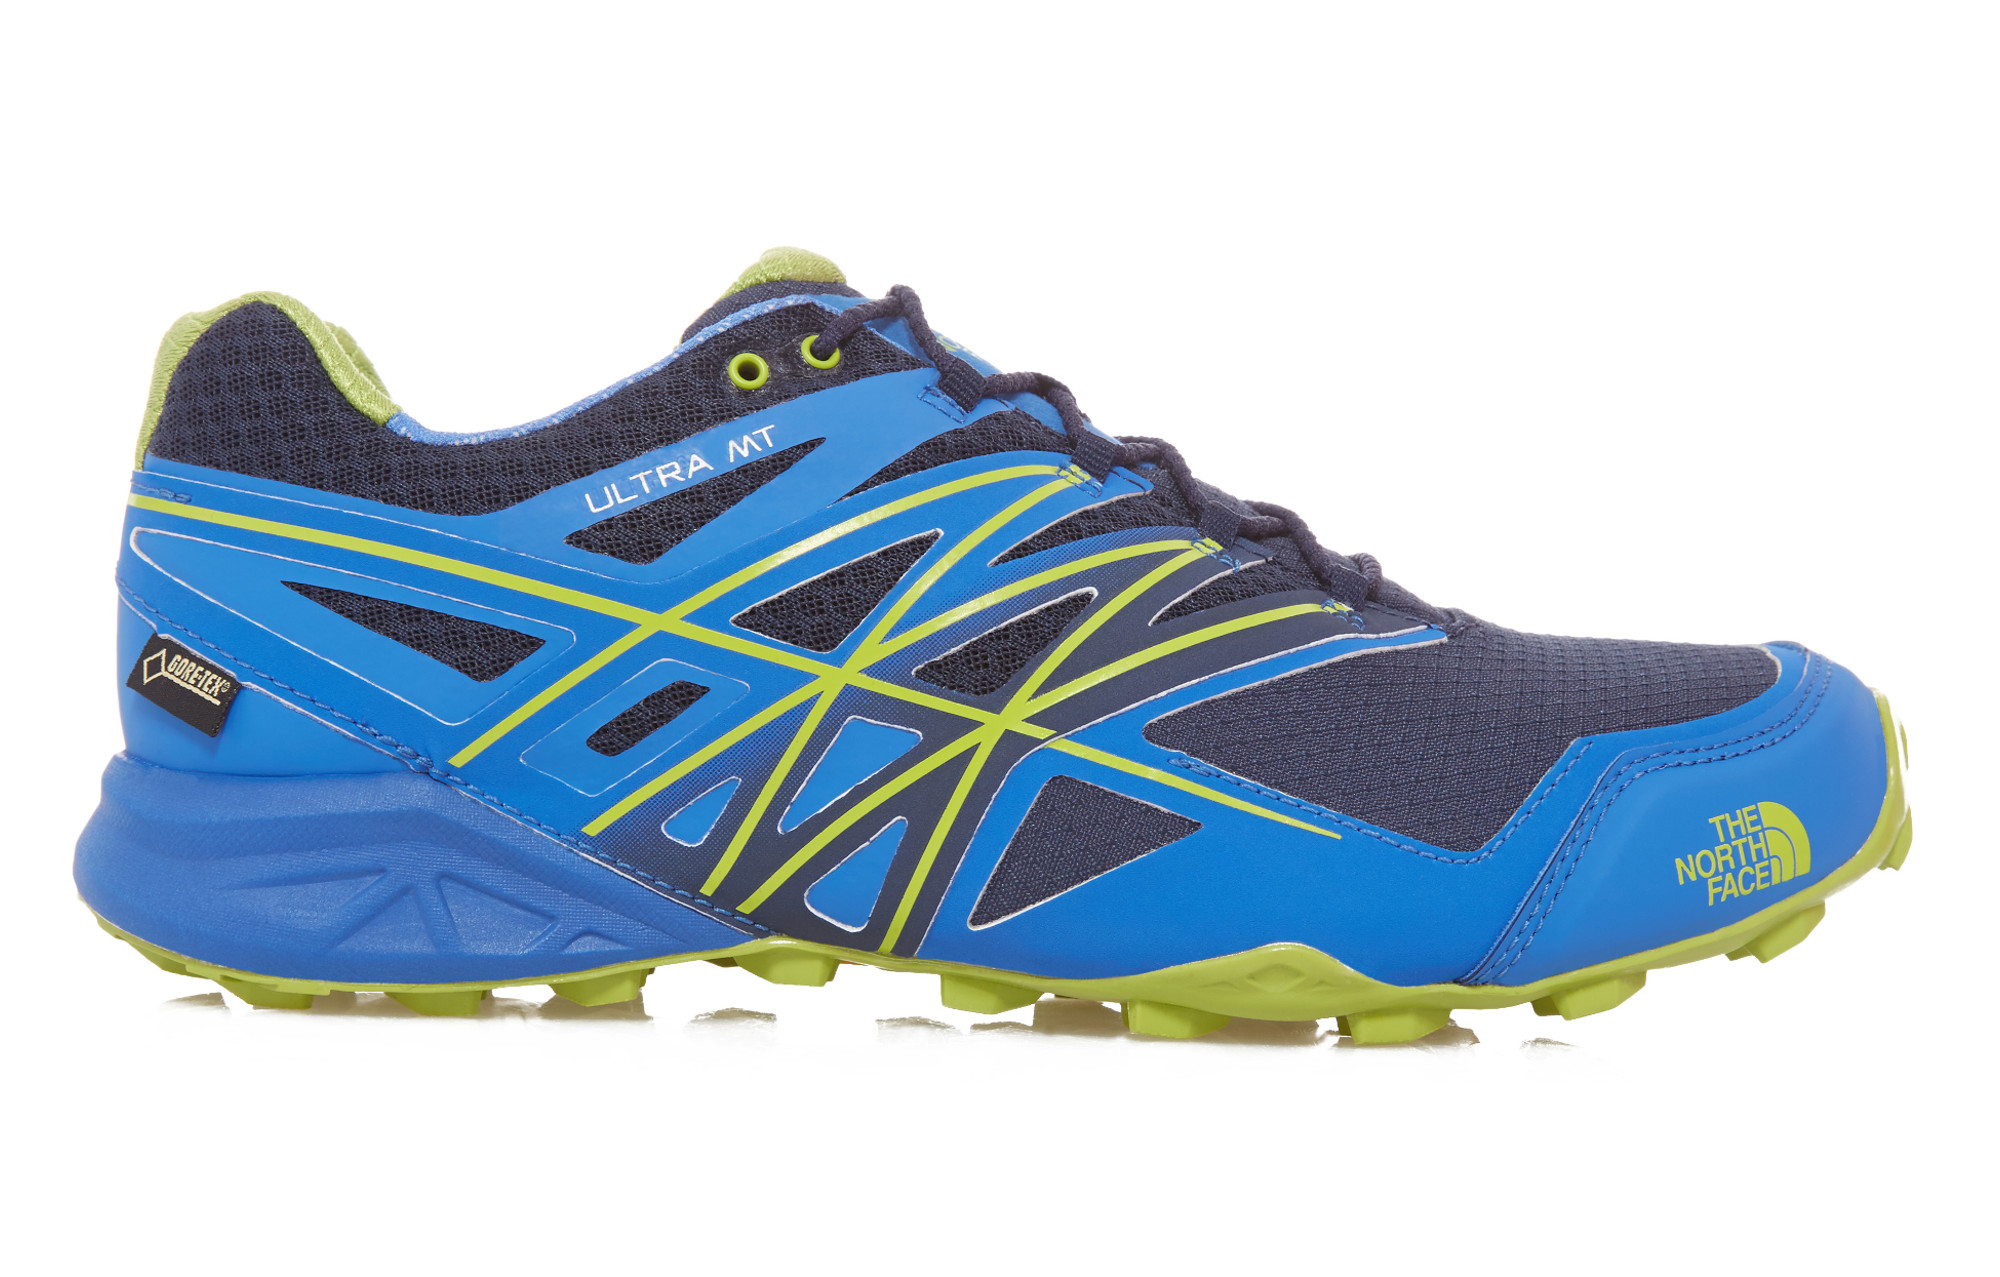 The North Face Shoes Ultra Mt Gore Tex Blue Green Men